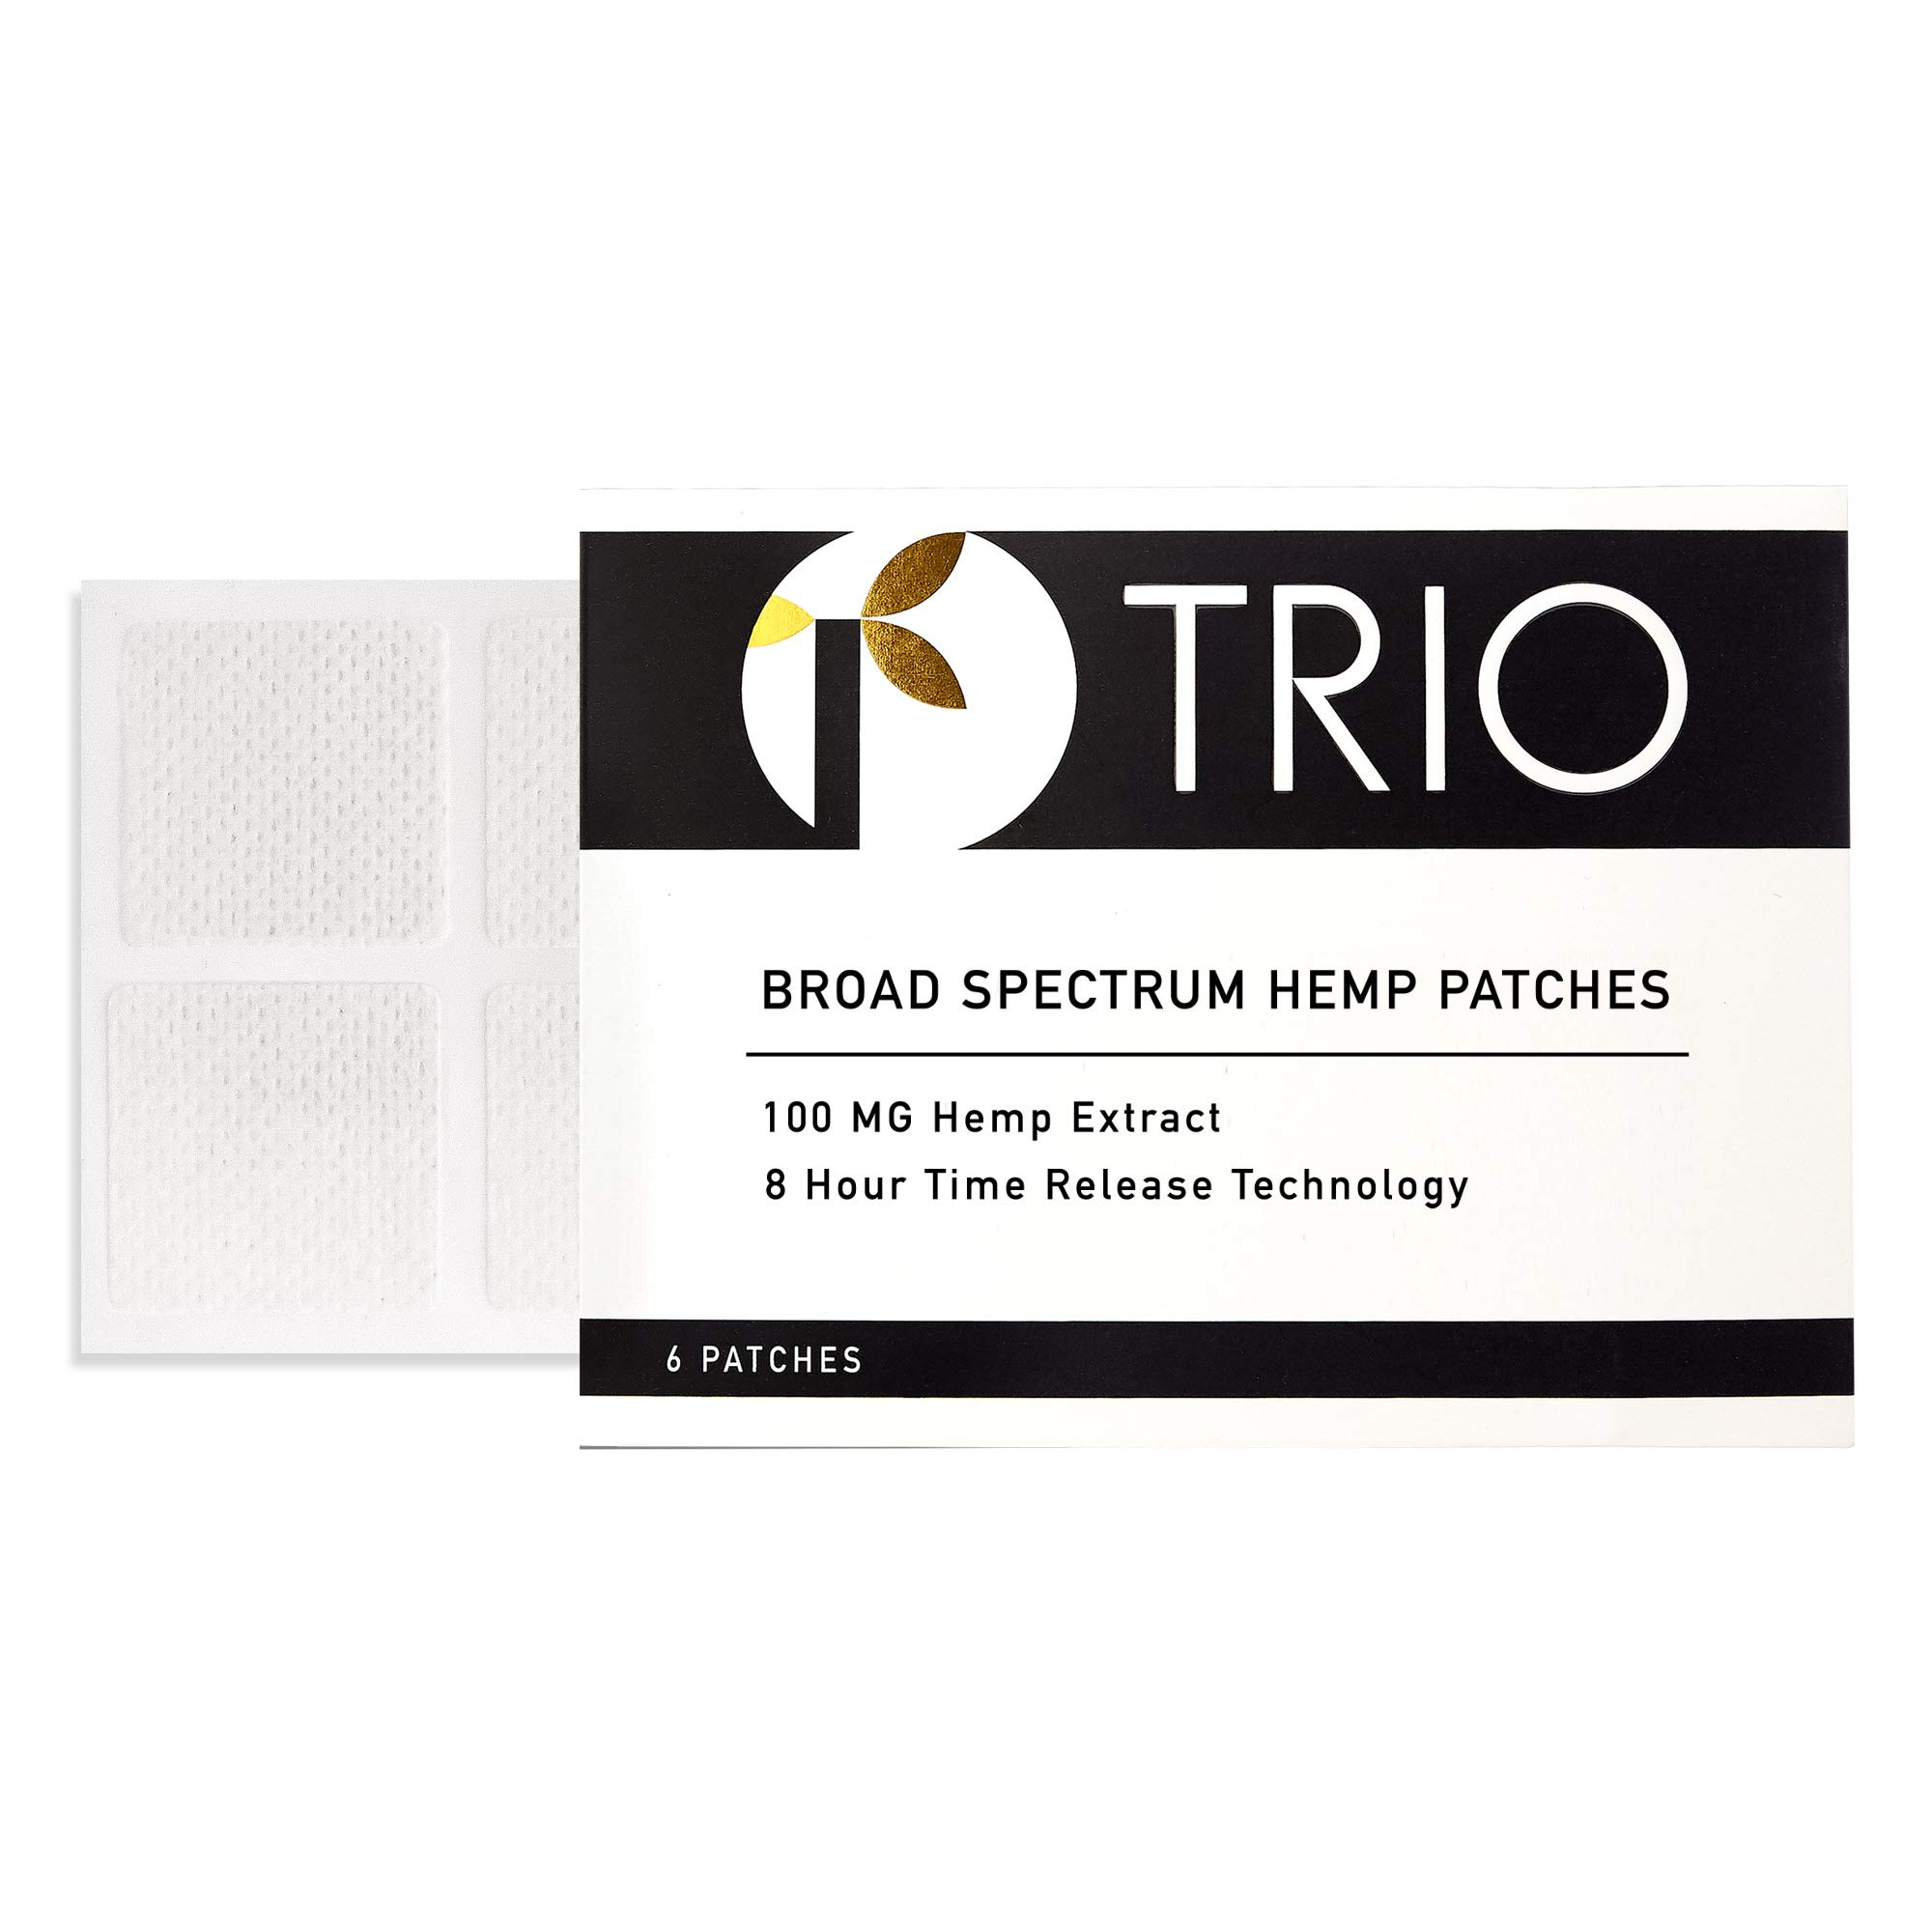 Hemp Oil Topical Pain Patch - Zero THC - Ideal for Pain Relief, Muscle Pain, Stress, Anxiety, Better Sleep - 6 Patches x 100mg Each (600mg Total)